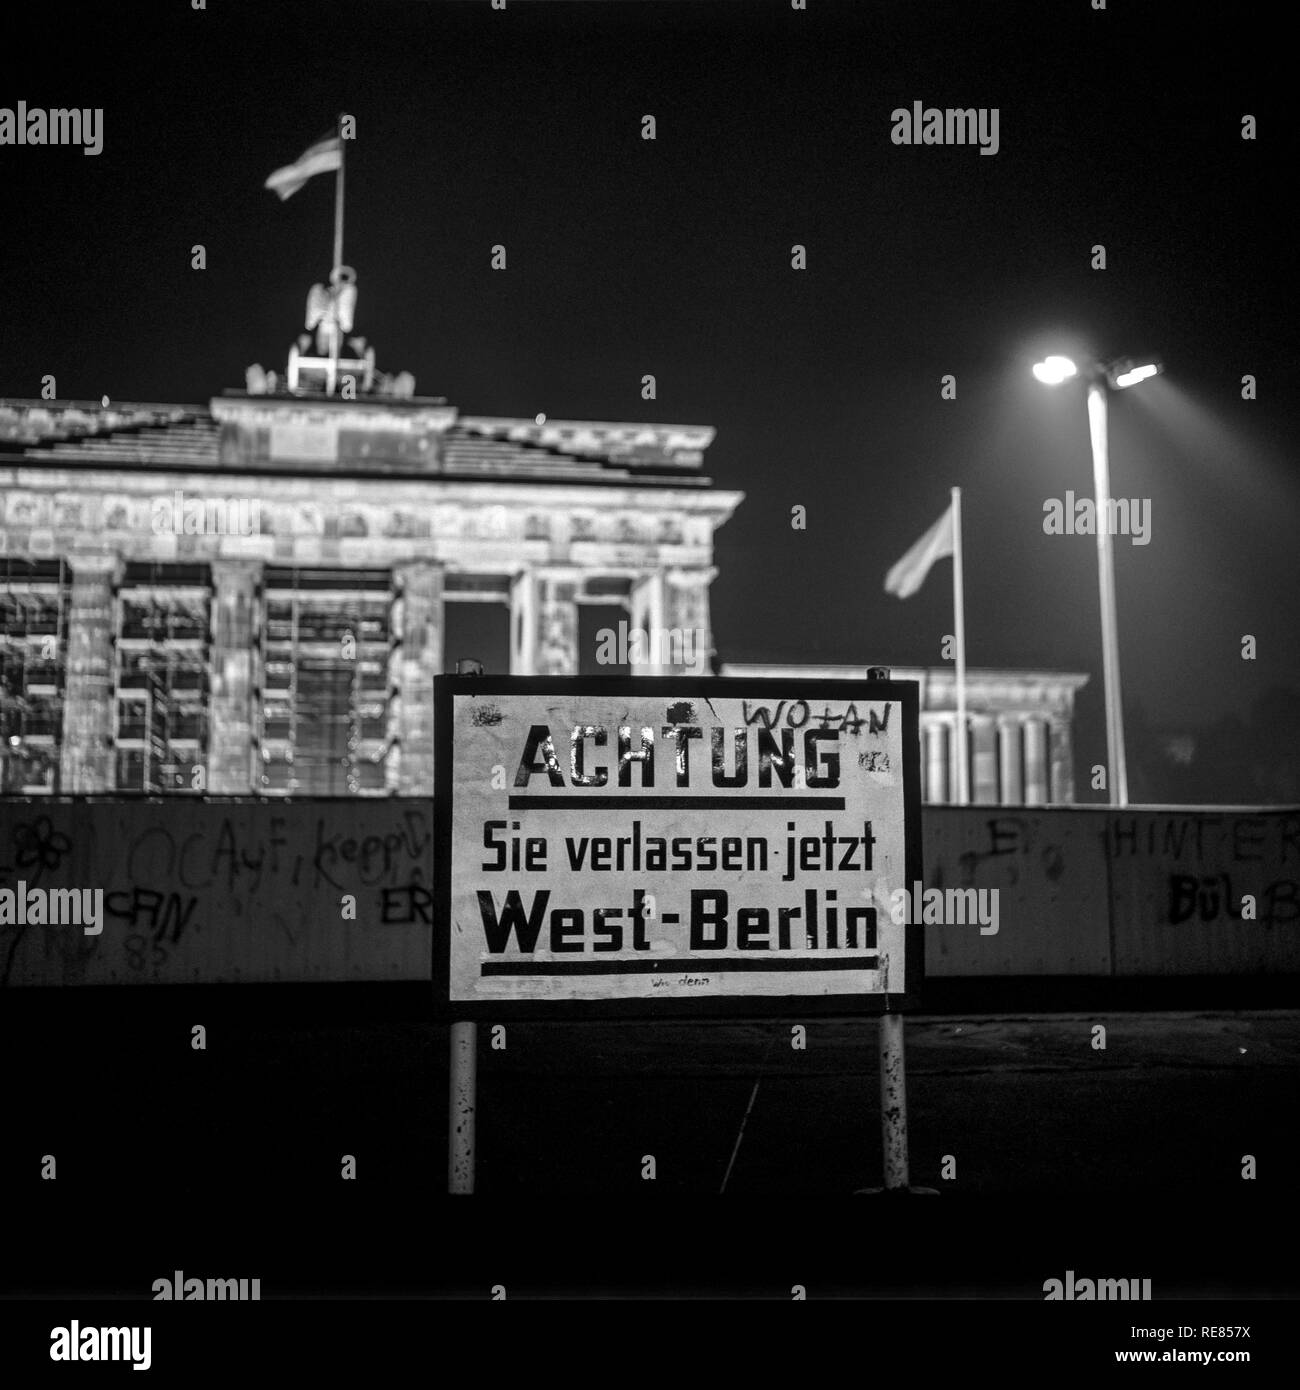 August 1986, leaving West Berlin warning sign front of the Berlin Wall, Brandenburg Gate at night in East Berlin, West Berlin side, Germany, Europe, - Stock Image